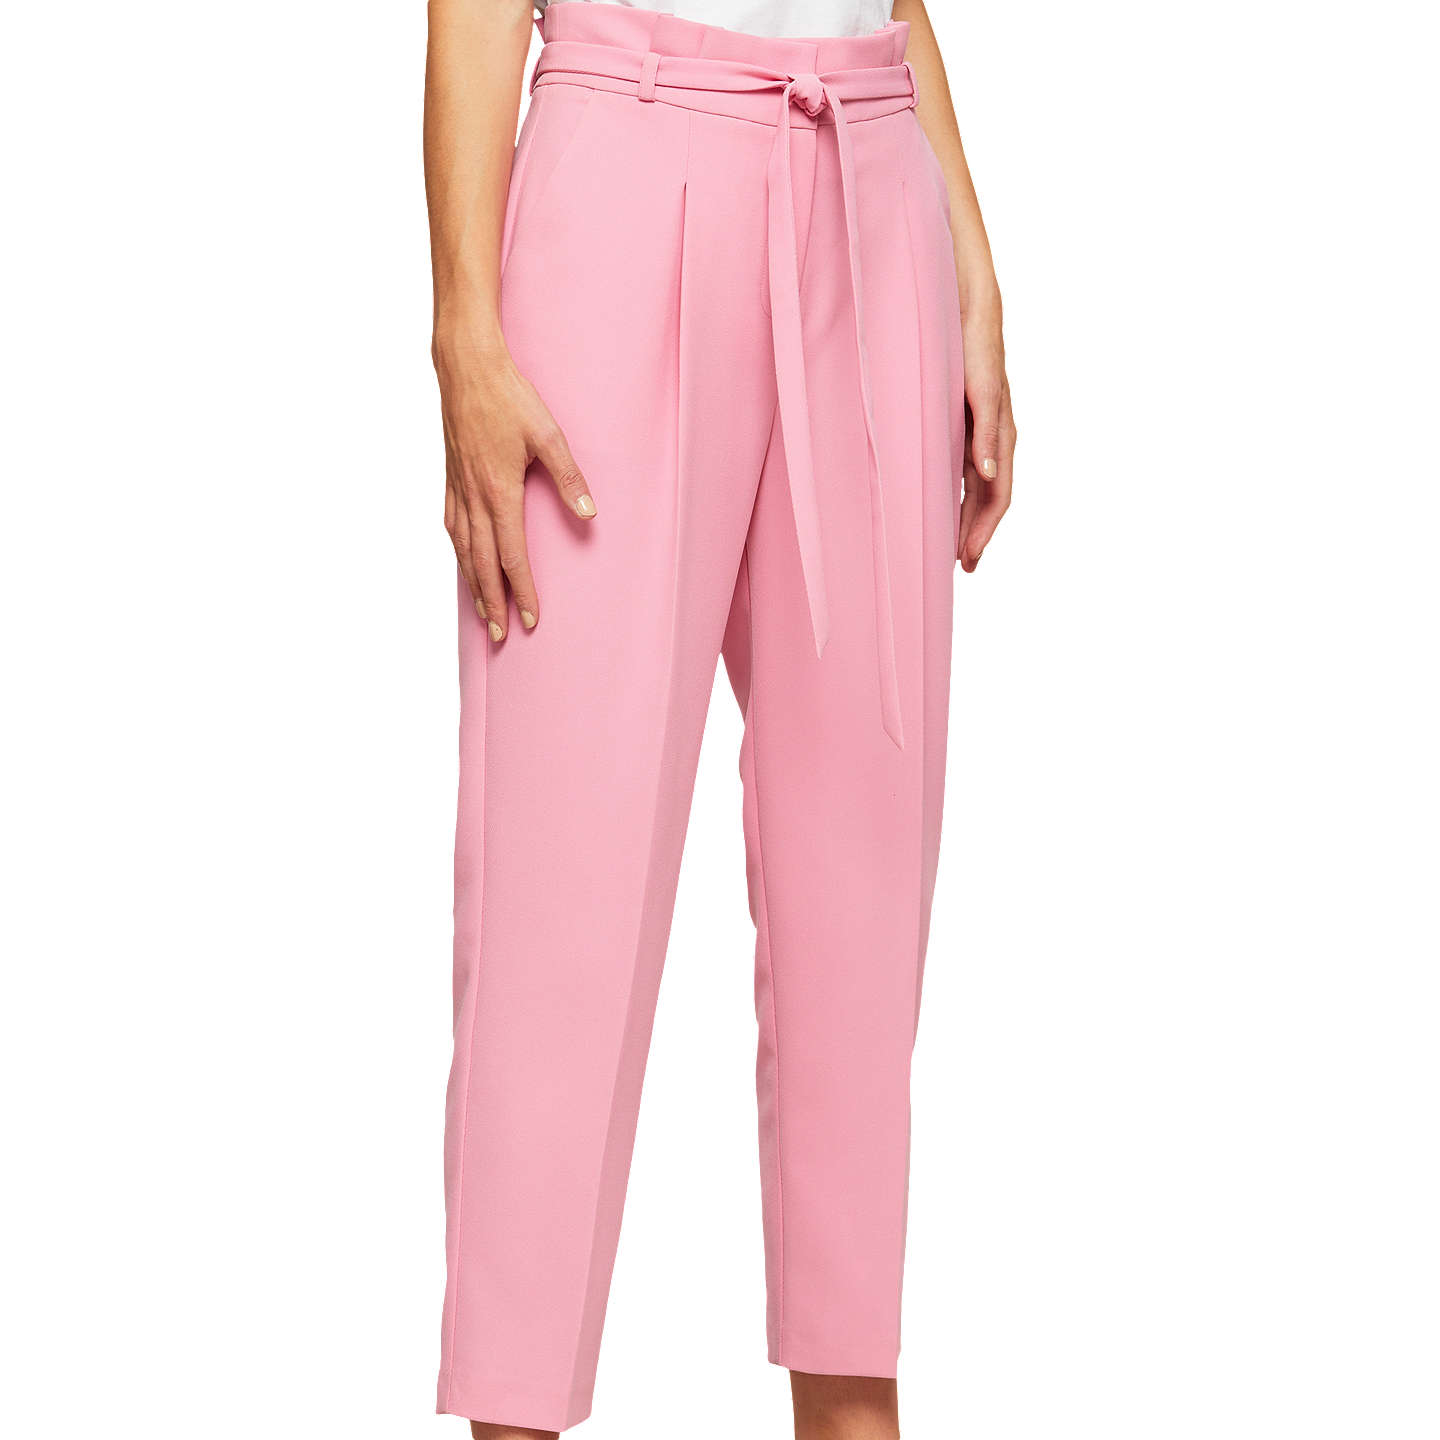 Miss Selfridge Petite Paper Bag Trousers, Pink at John Lewis